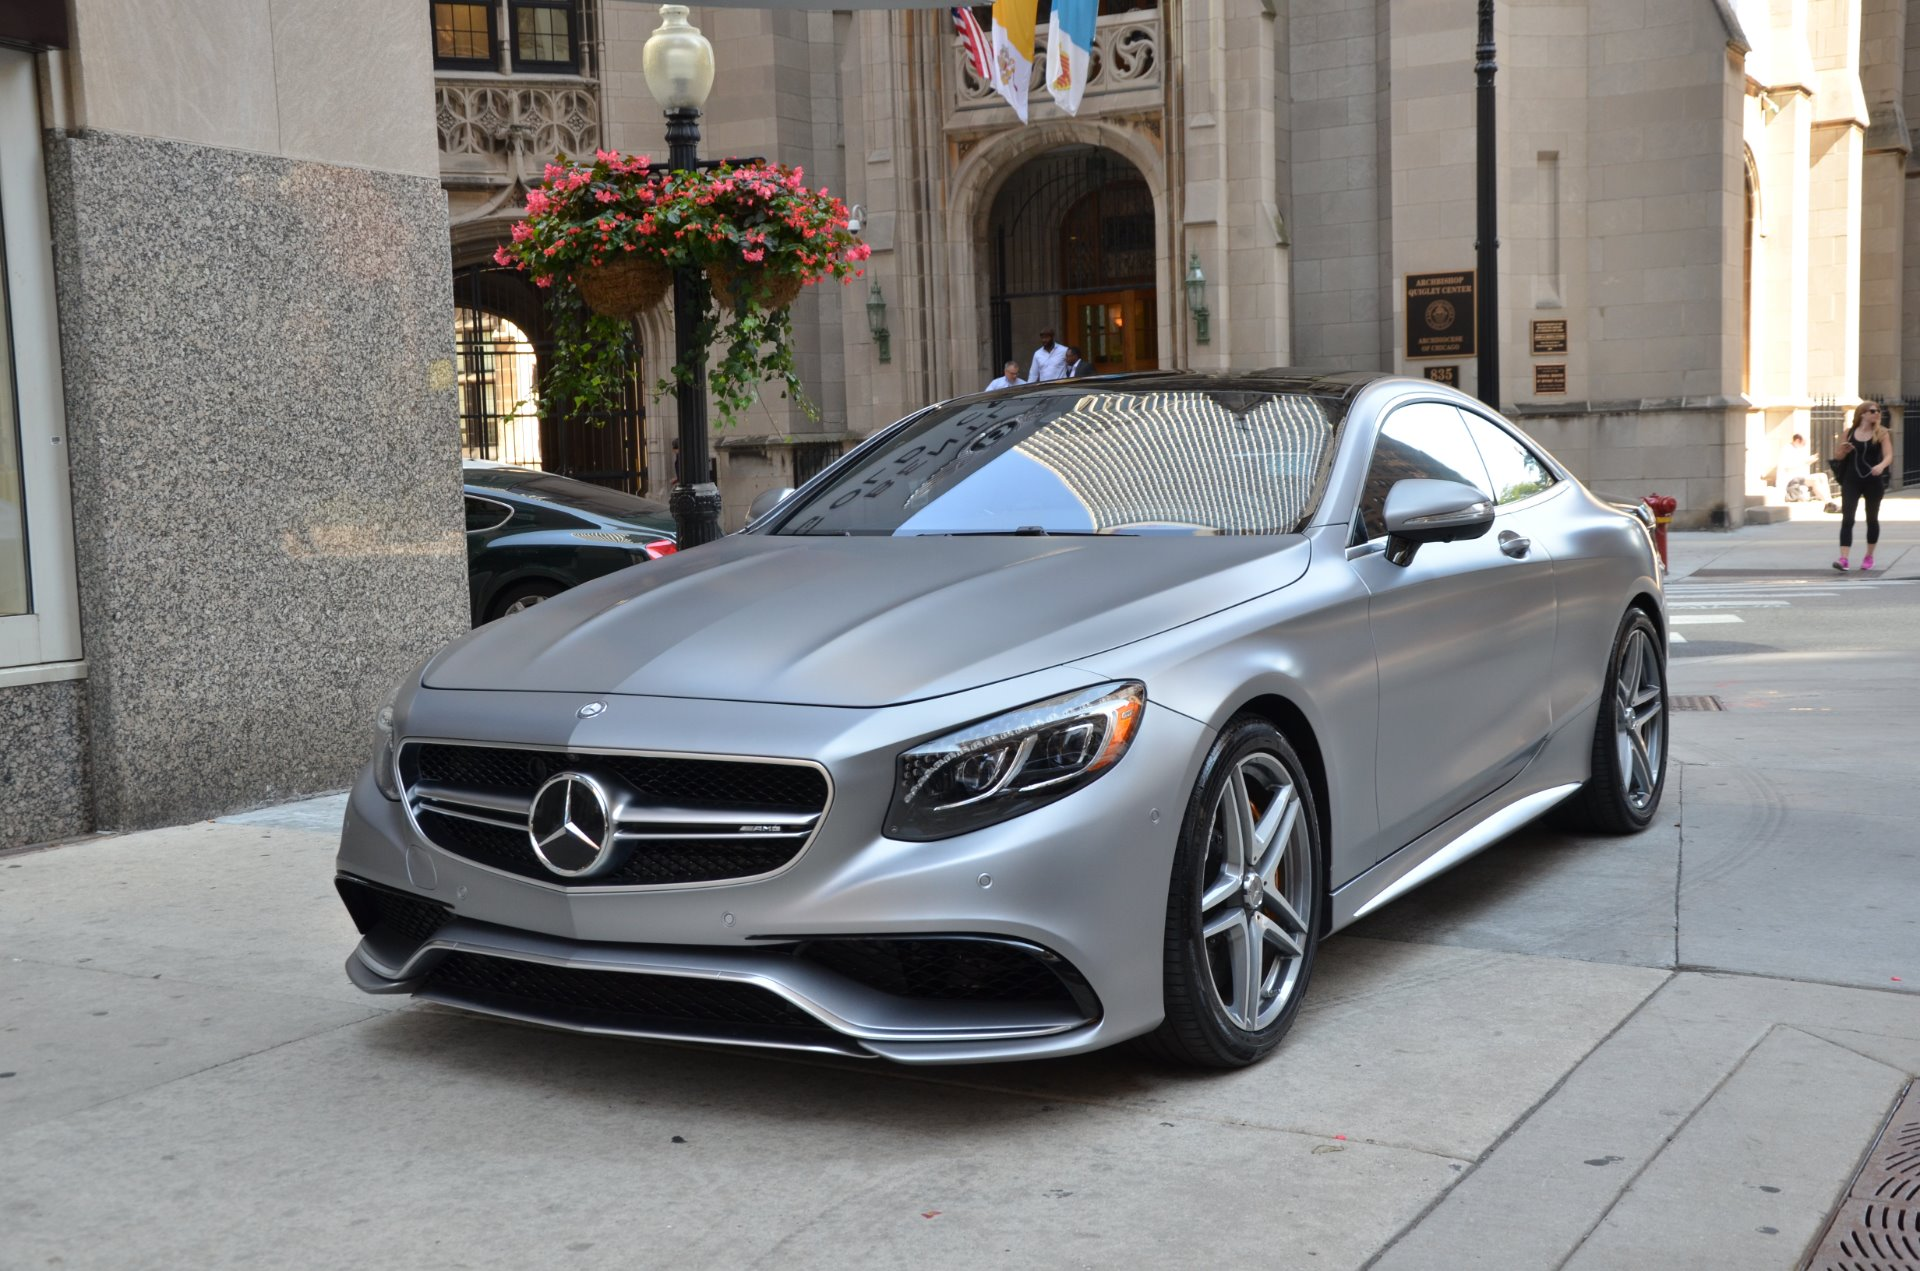 2015 mercedes benz s class s63 amg stock gc2194 for sale near chicago il il mercedes benz. Black Bedroom Furniture Sets. Home Design Ideas